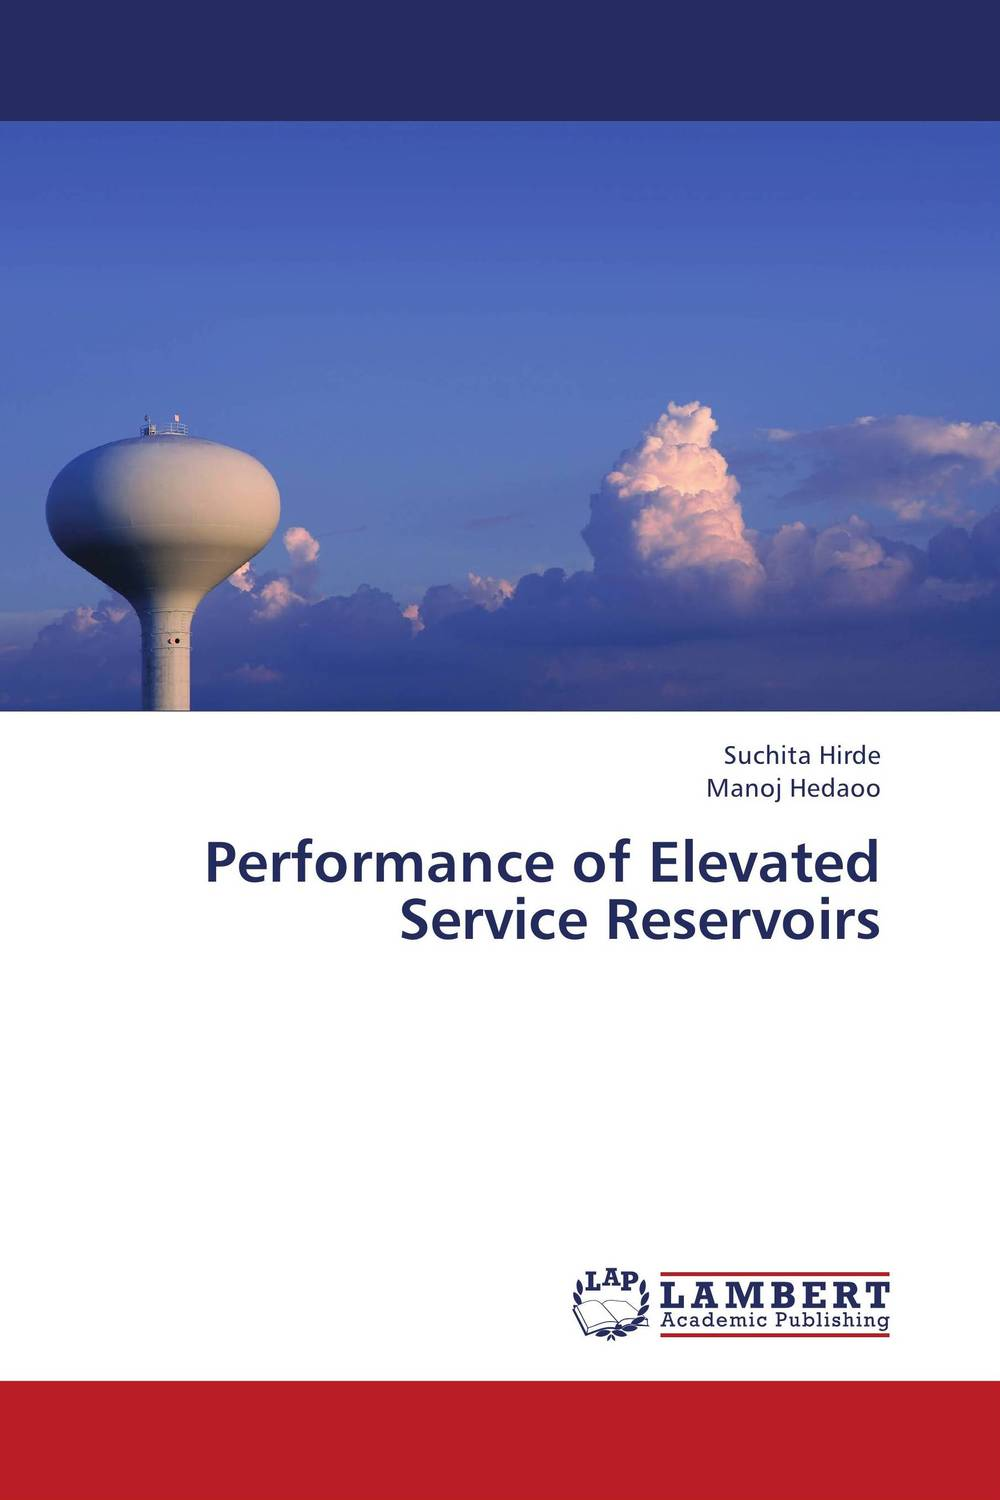 Performance of Elevated Service Reservoirs on the distribution of information structures and focal points